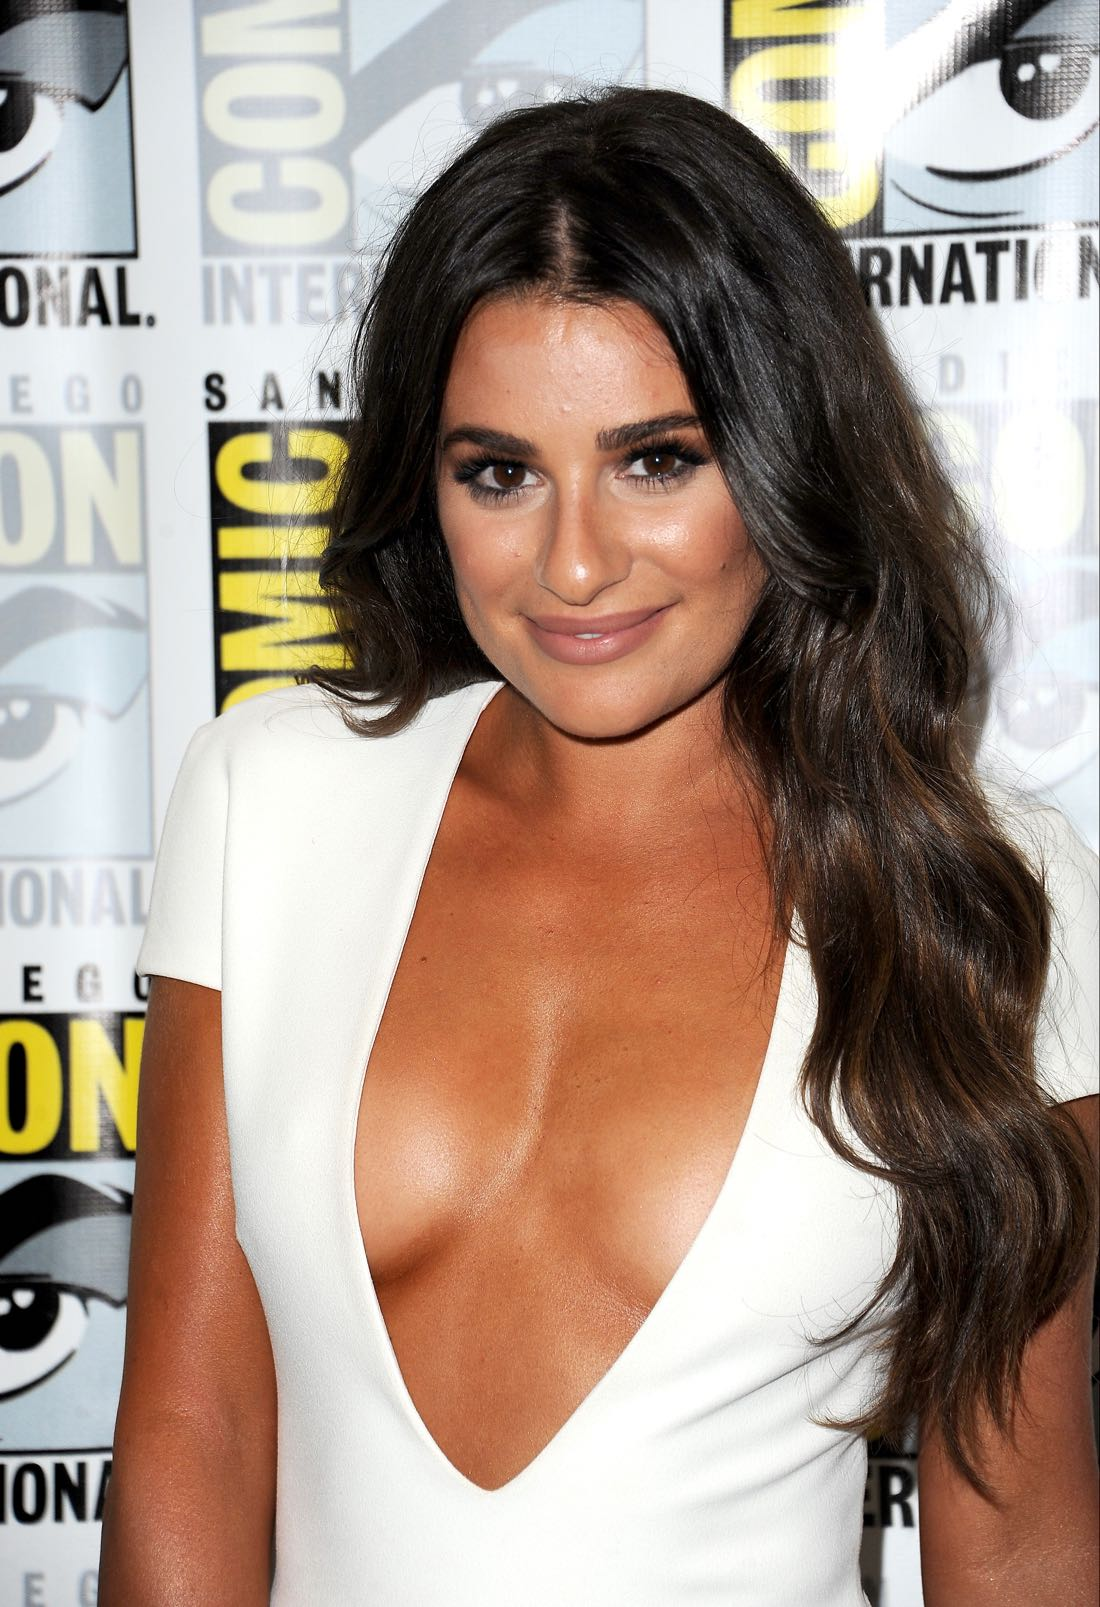 FOX FANFARE AT SAN DIEGO COMIC-CON © 2016: SCREAM QUEENS cast member Lea Michele during the SCREAM QUEENS press room on Friday, July 22 at the FOX FANFARE AT SAN DIEGO COMIC-CON © 2016. CR: Scott Krikland/FX © 2016 FOX BROADCASTING